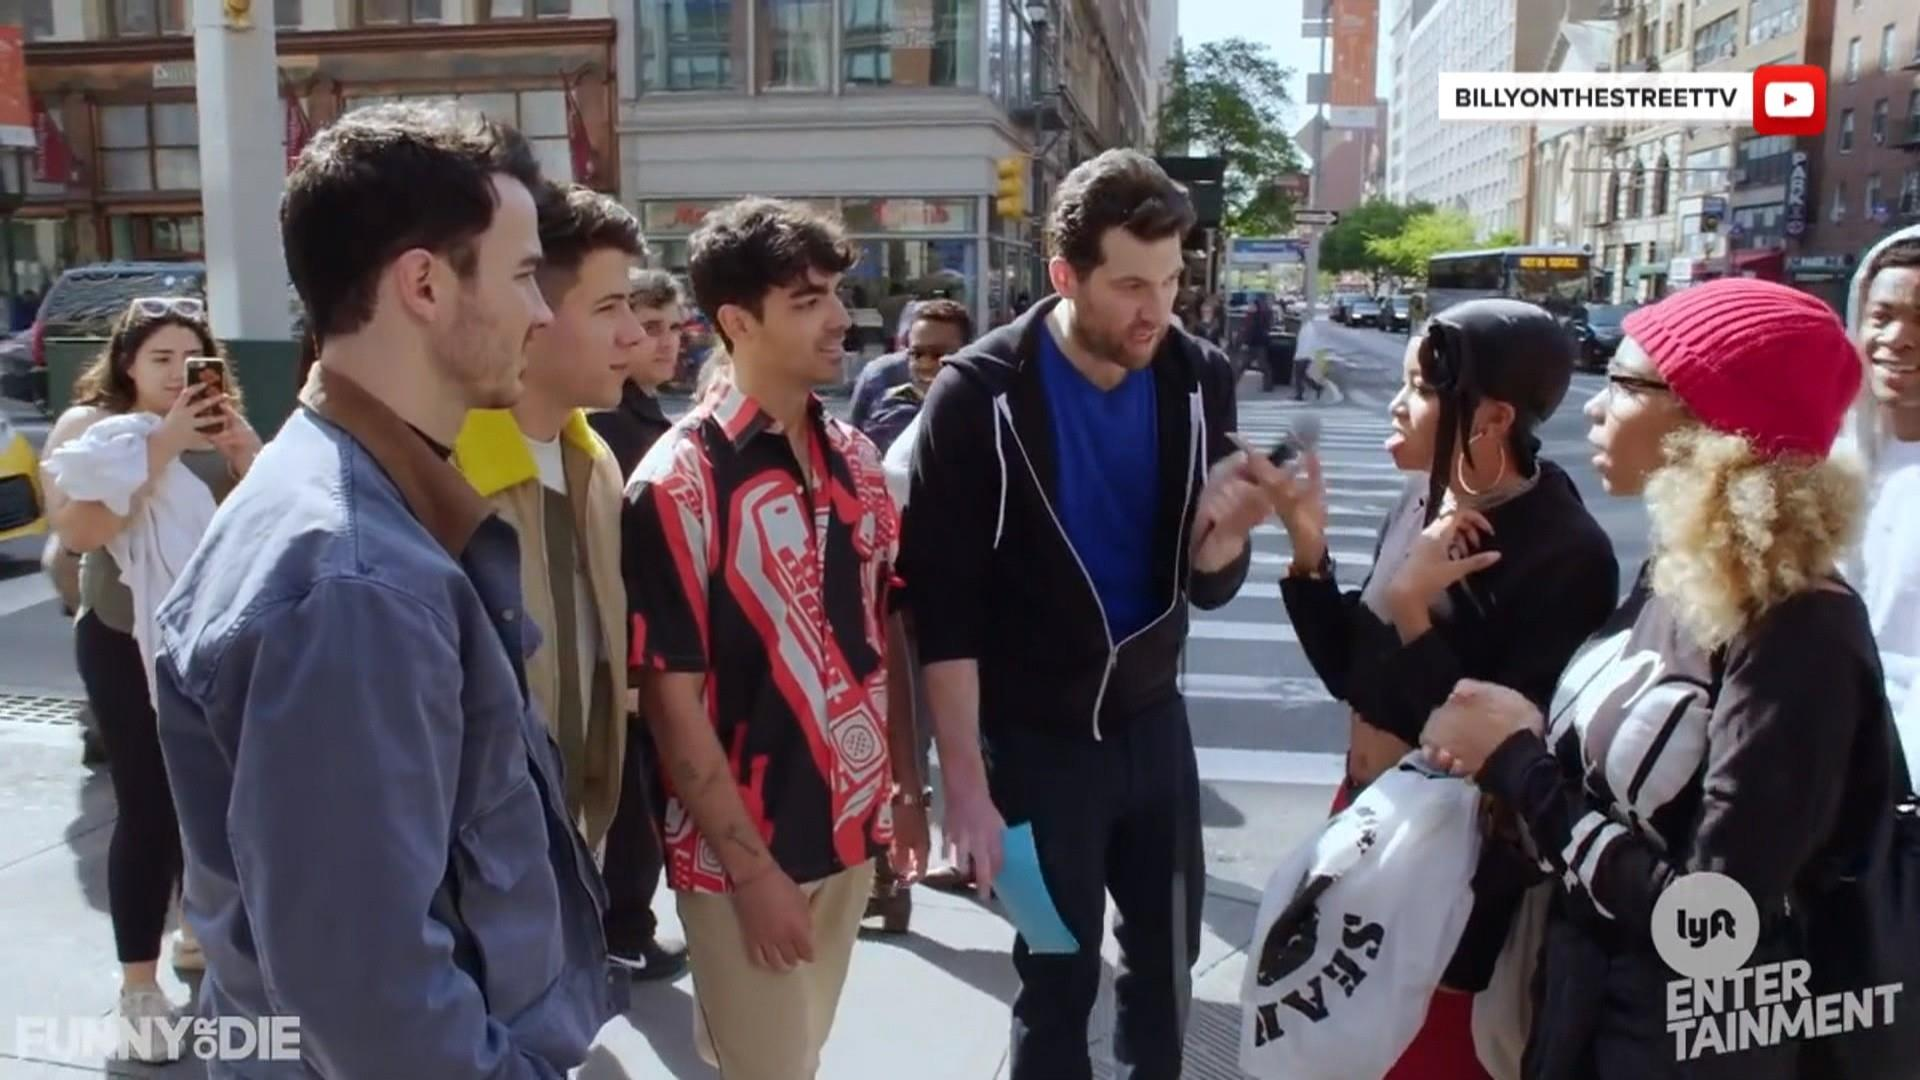 See the Jonas Brothers hit the NYC streets with Billy Eichner